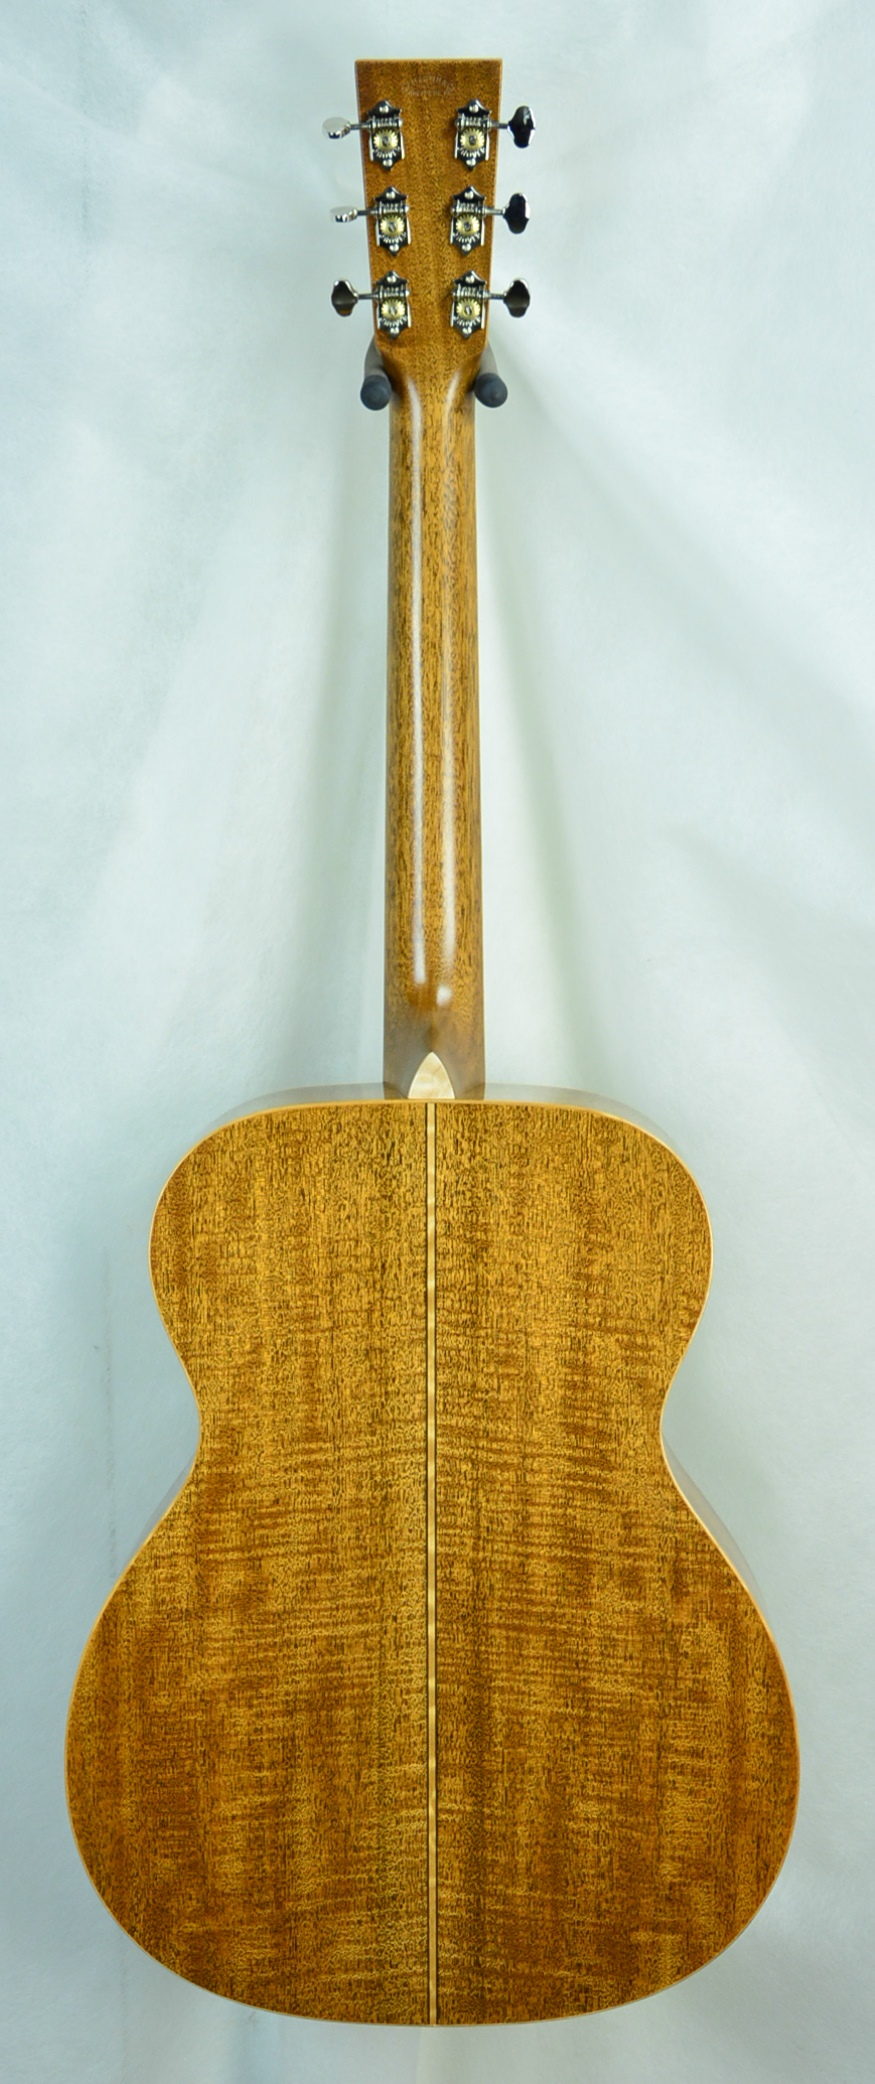 Q-2499624 S-1880673 OM Fiddleback TBS Maple inlay (3).JPG